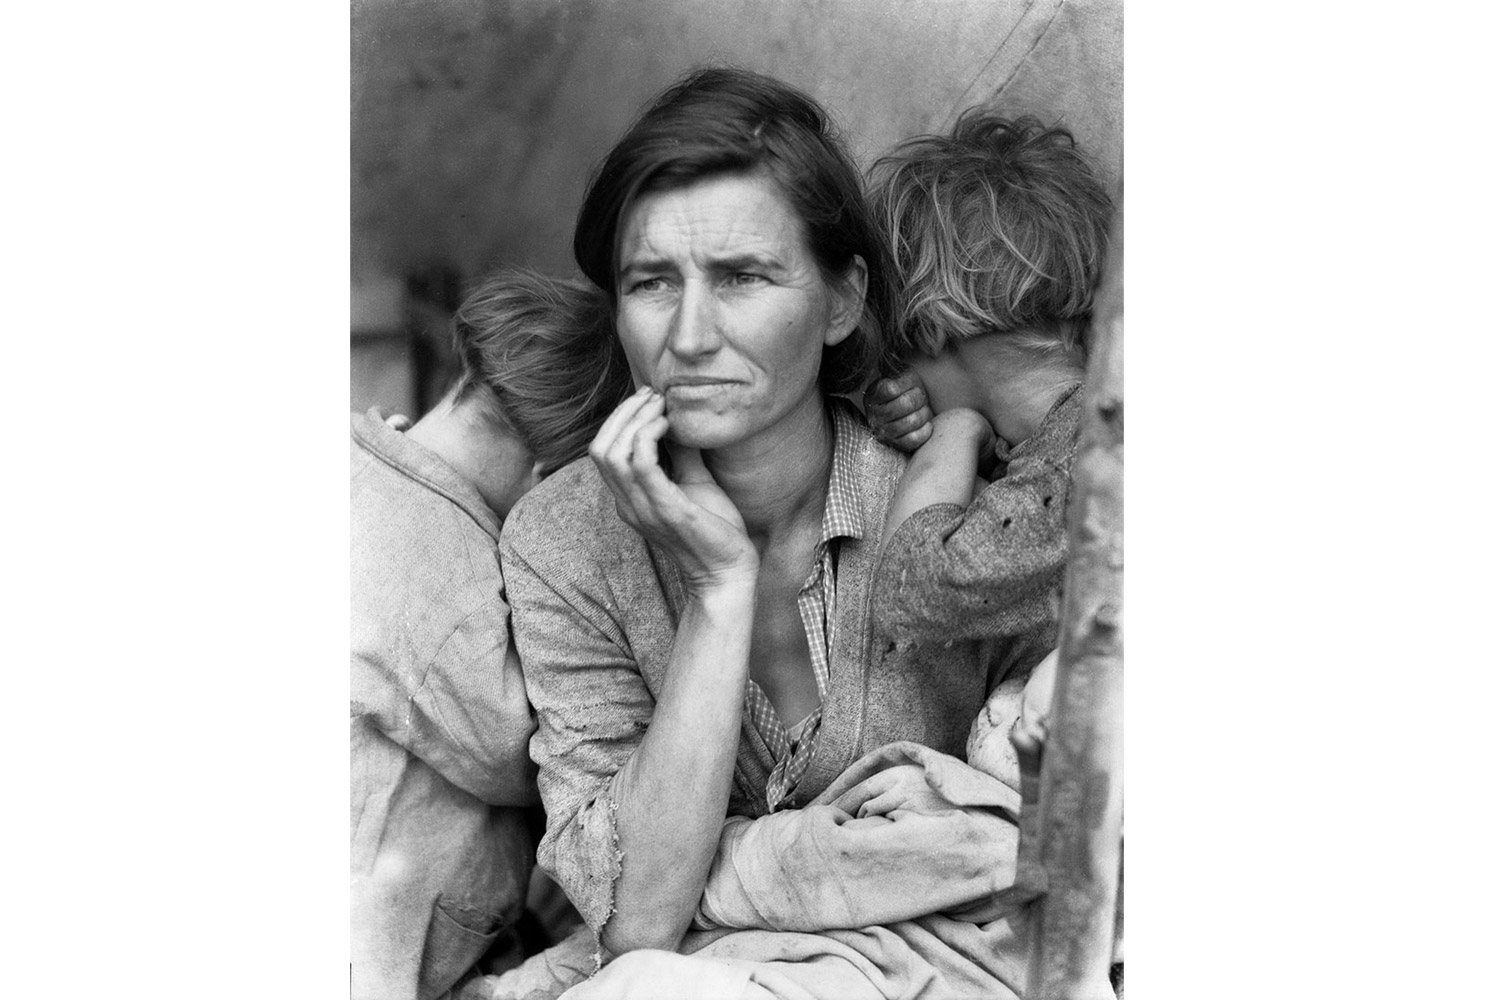 Migrant Mother, Nipomo, California - 1936 - Dorothea Lange © The Dorothea Lange Collection, the Oakland Museum of California, City of Oakland. Gift of Paul S. Taylor